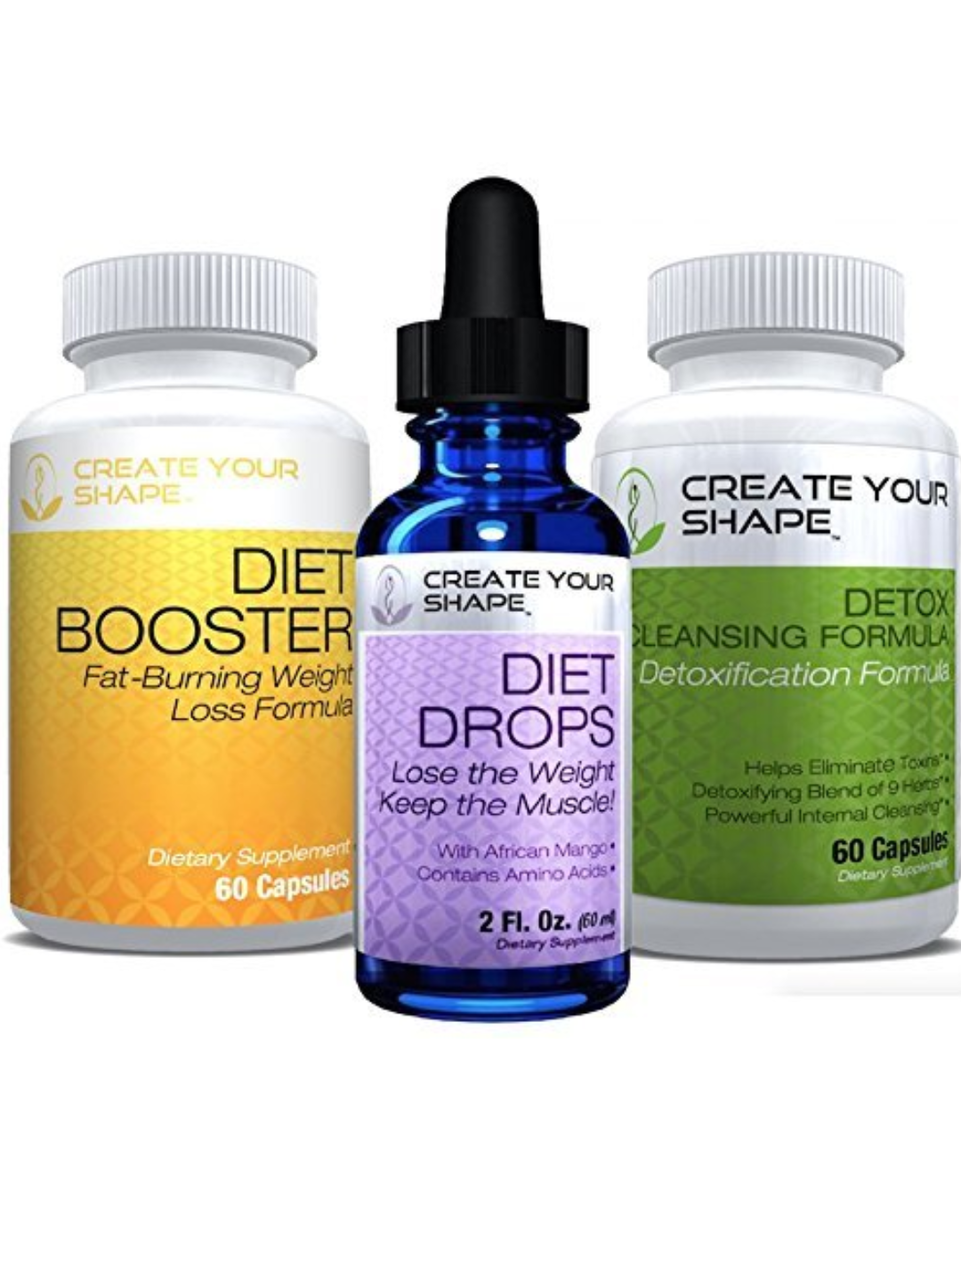 Diet Booster Diet Pills + Detox Cleanse + Diet Drops - 3 Pack - Lose Weight  - Amino Acids - Appetite Suppressant - Lose Belly Fat - Weight Loss Pills